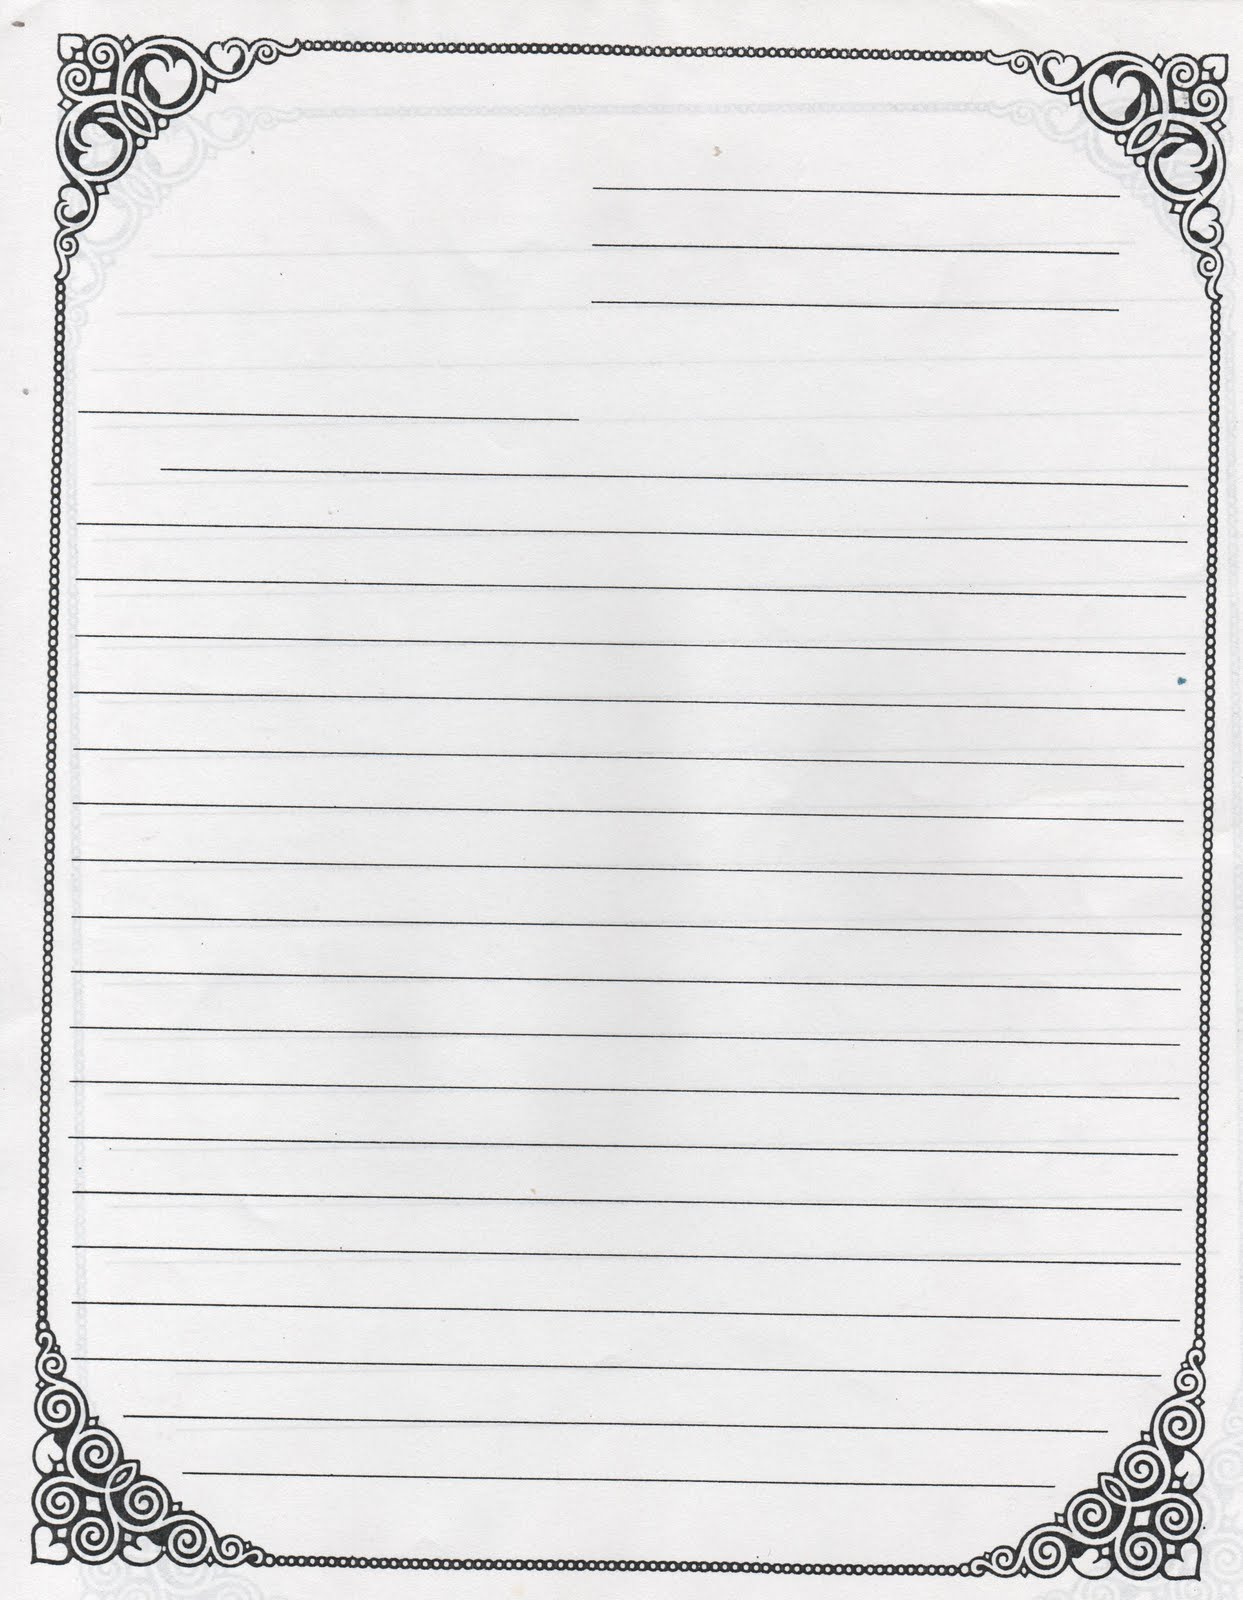 blank writing paper template Lined paper guide - you can also achieve invisible lines for your notebook by using any lined paper template beneath any blank page and start writing with a paper guide in place our set of research paper outline templates suggest the use of line paper guides for a neat output.